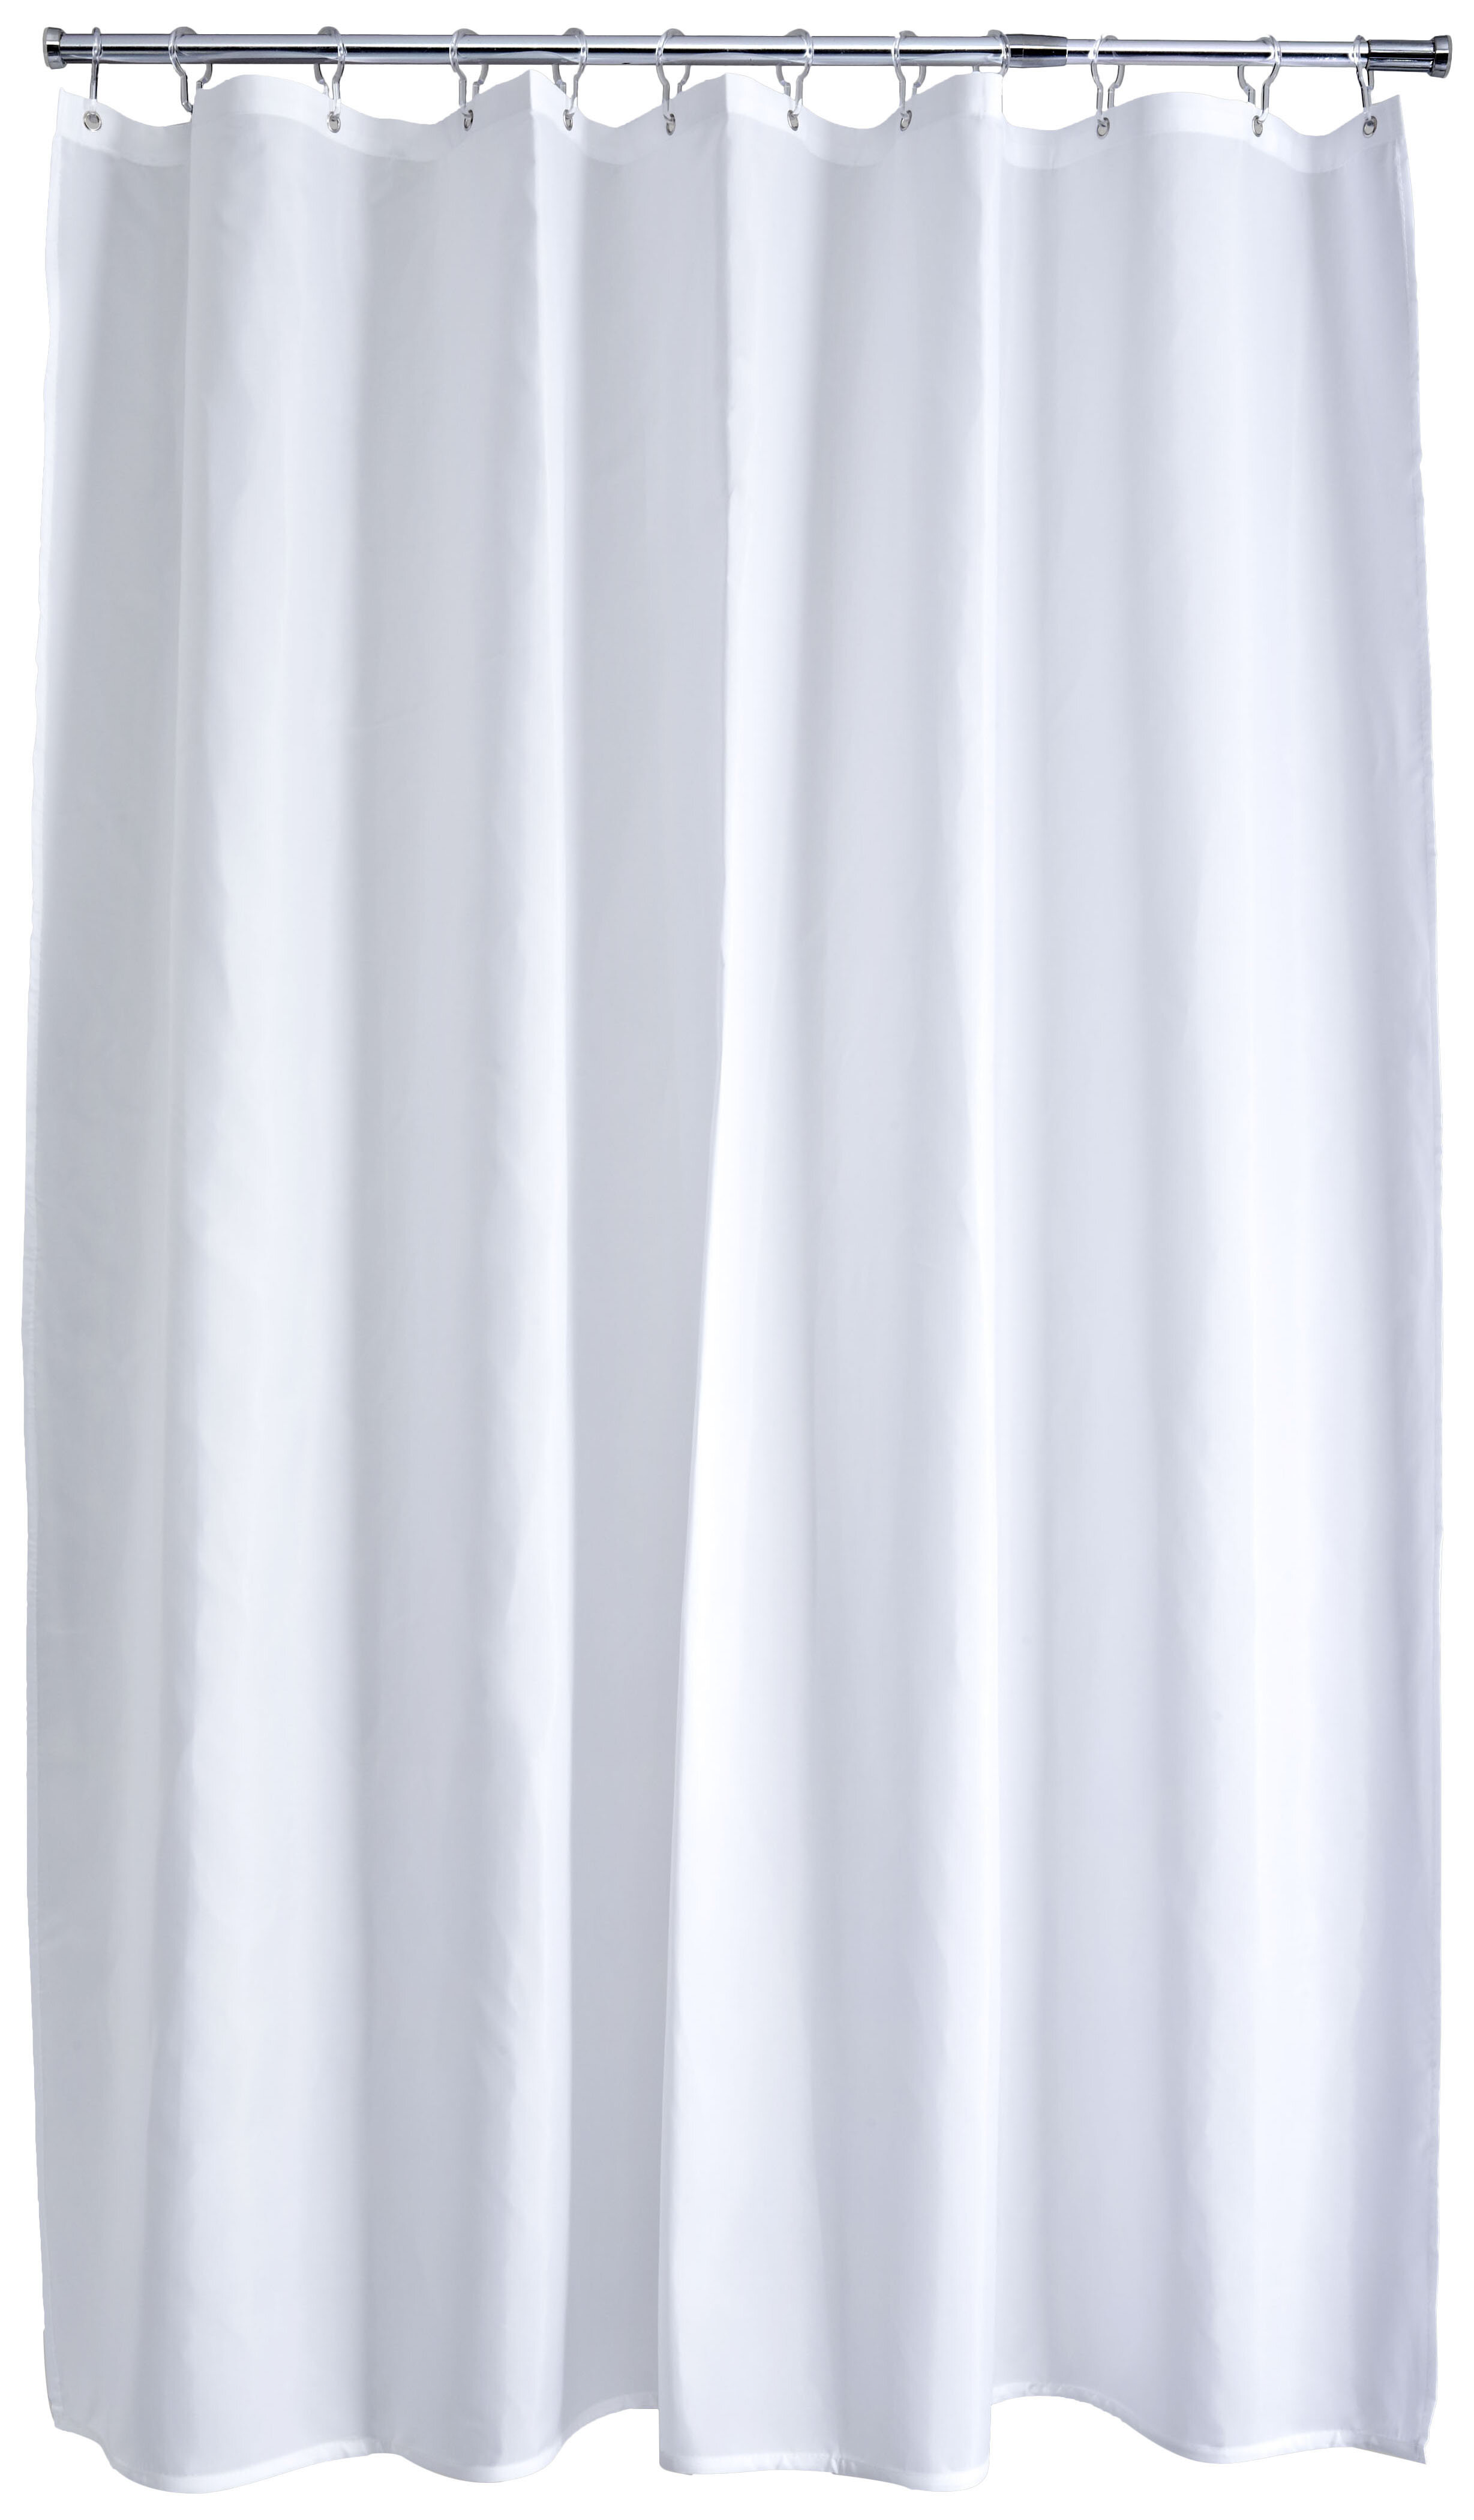 design curtain white within waffle curtains x shower measurements cotton ideas ruffle